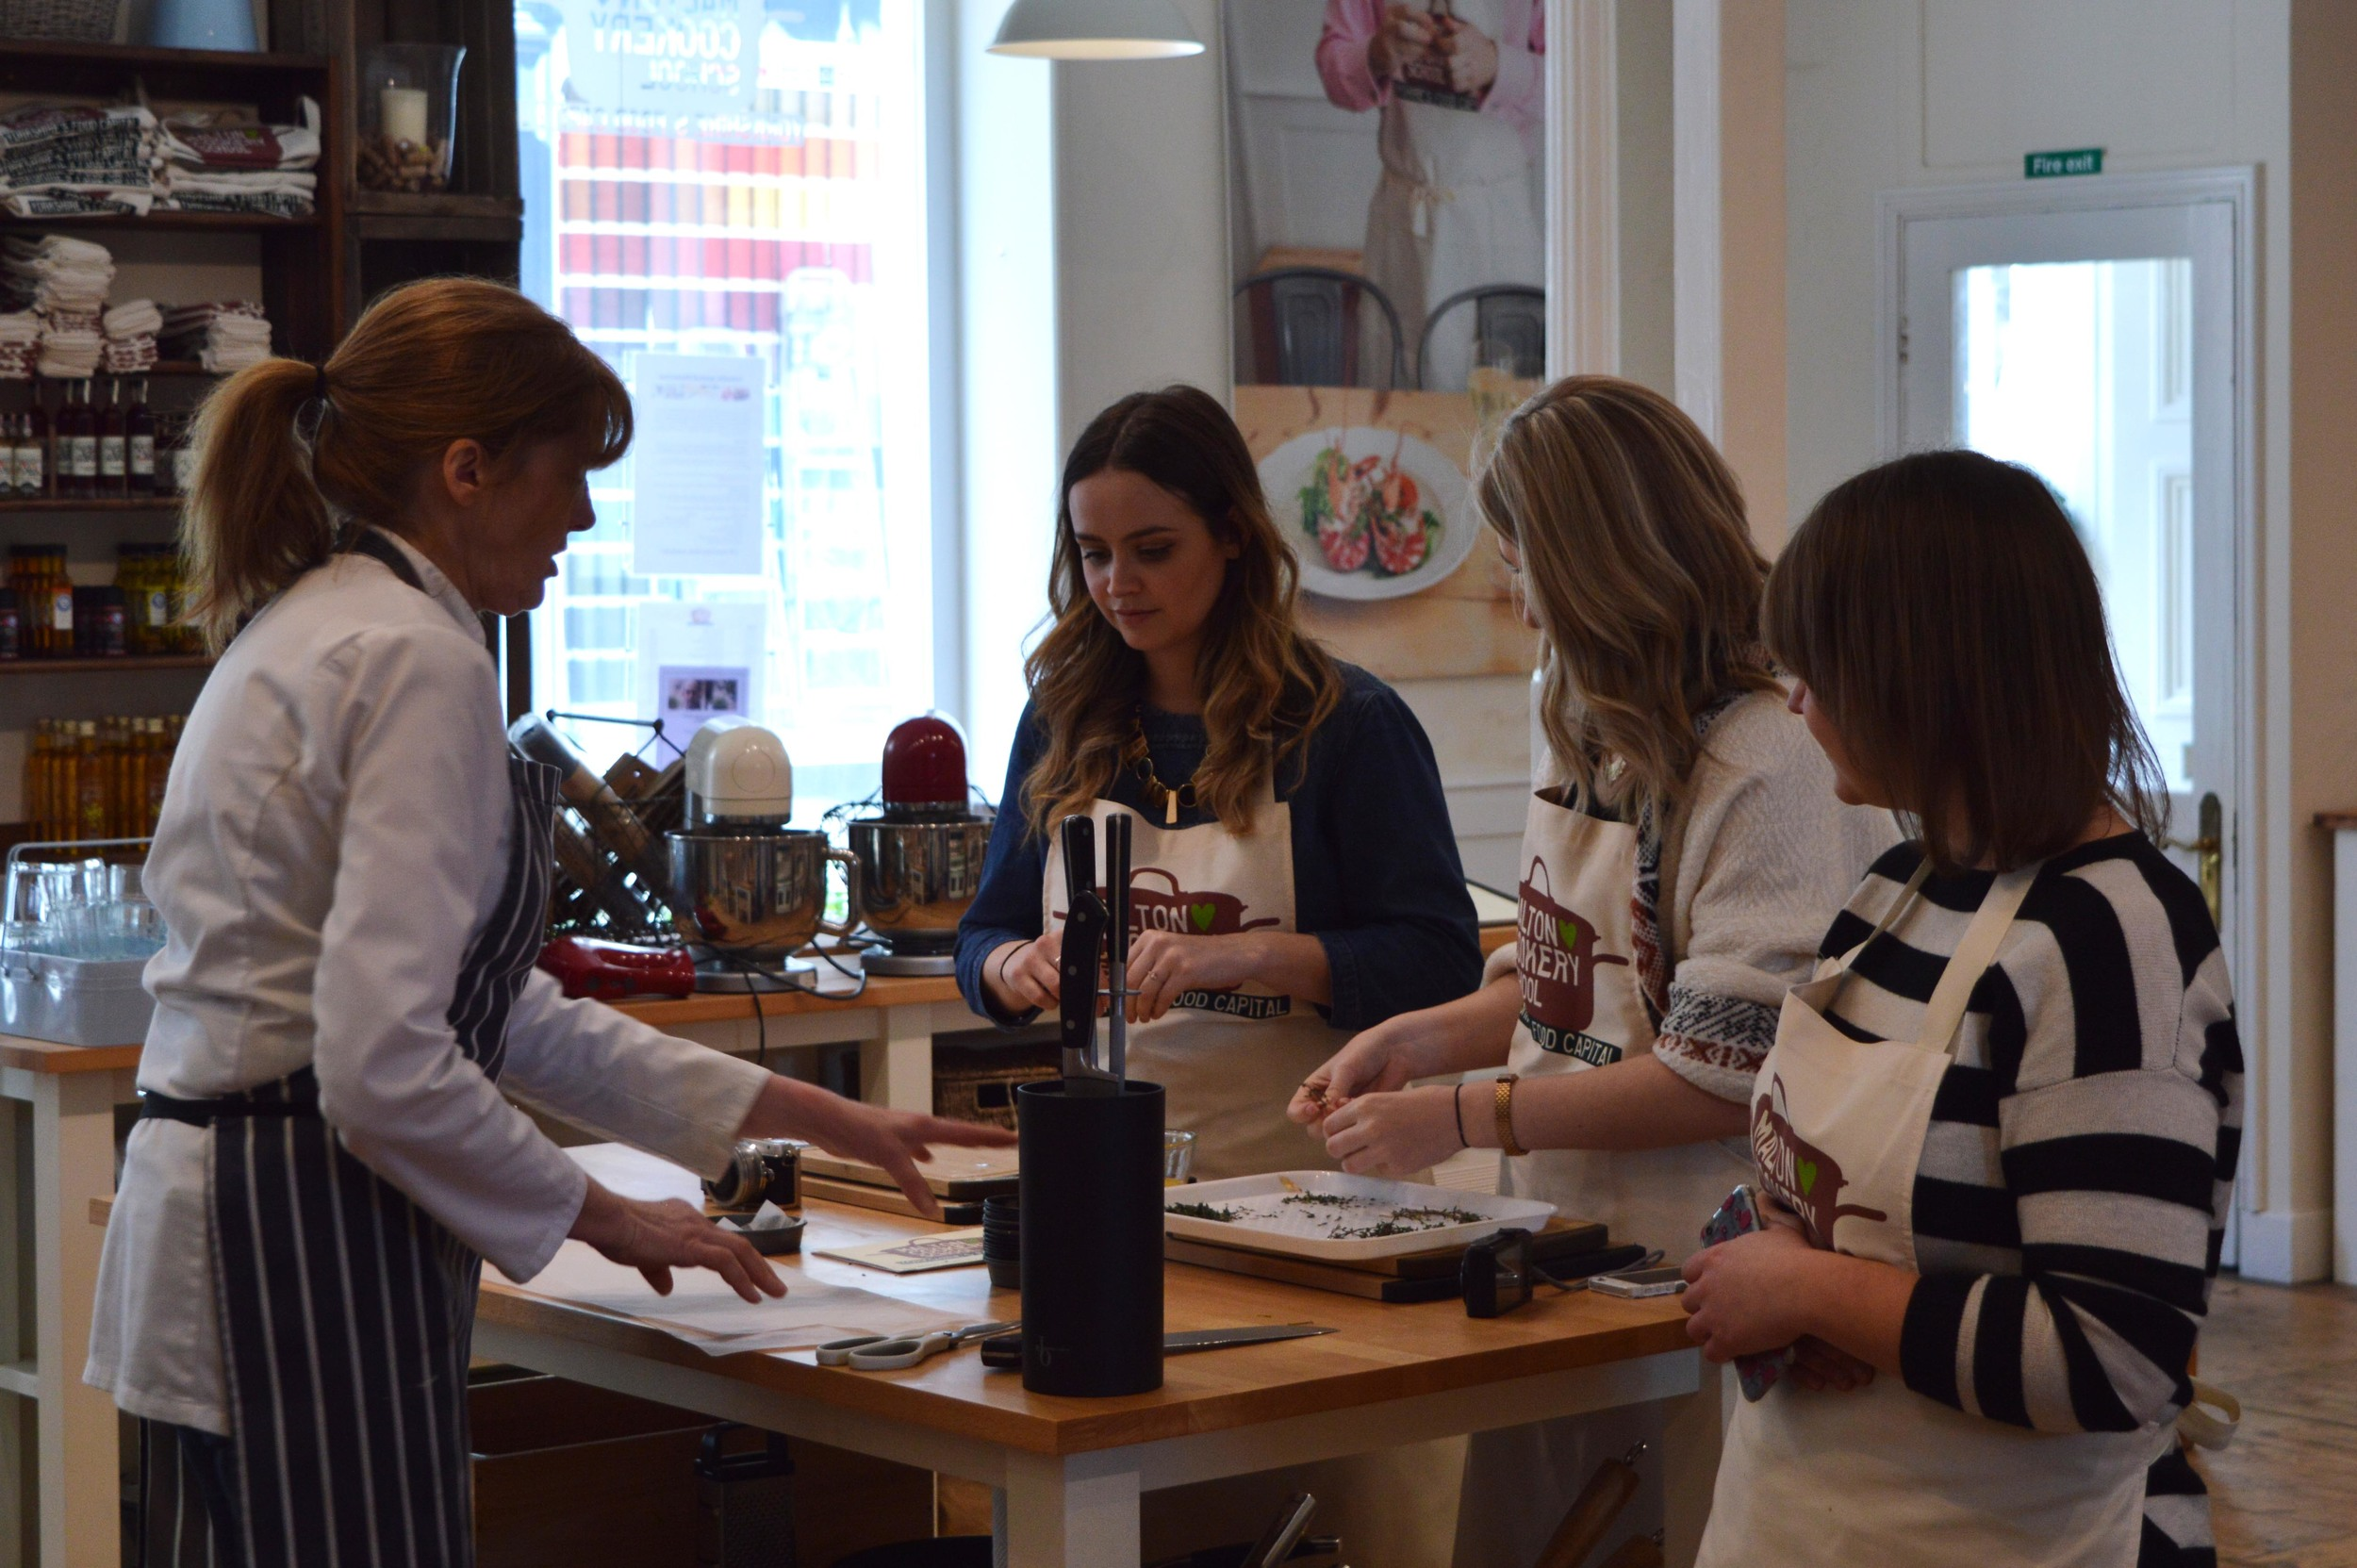 Gilly shows some of the fellow guests how to cook with fine Yorkshire produce.